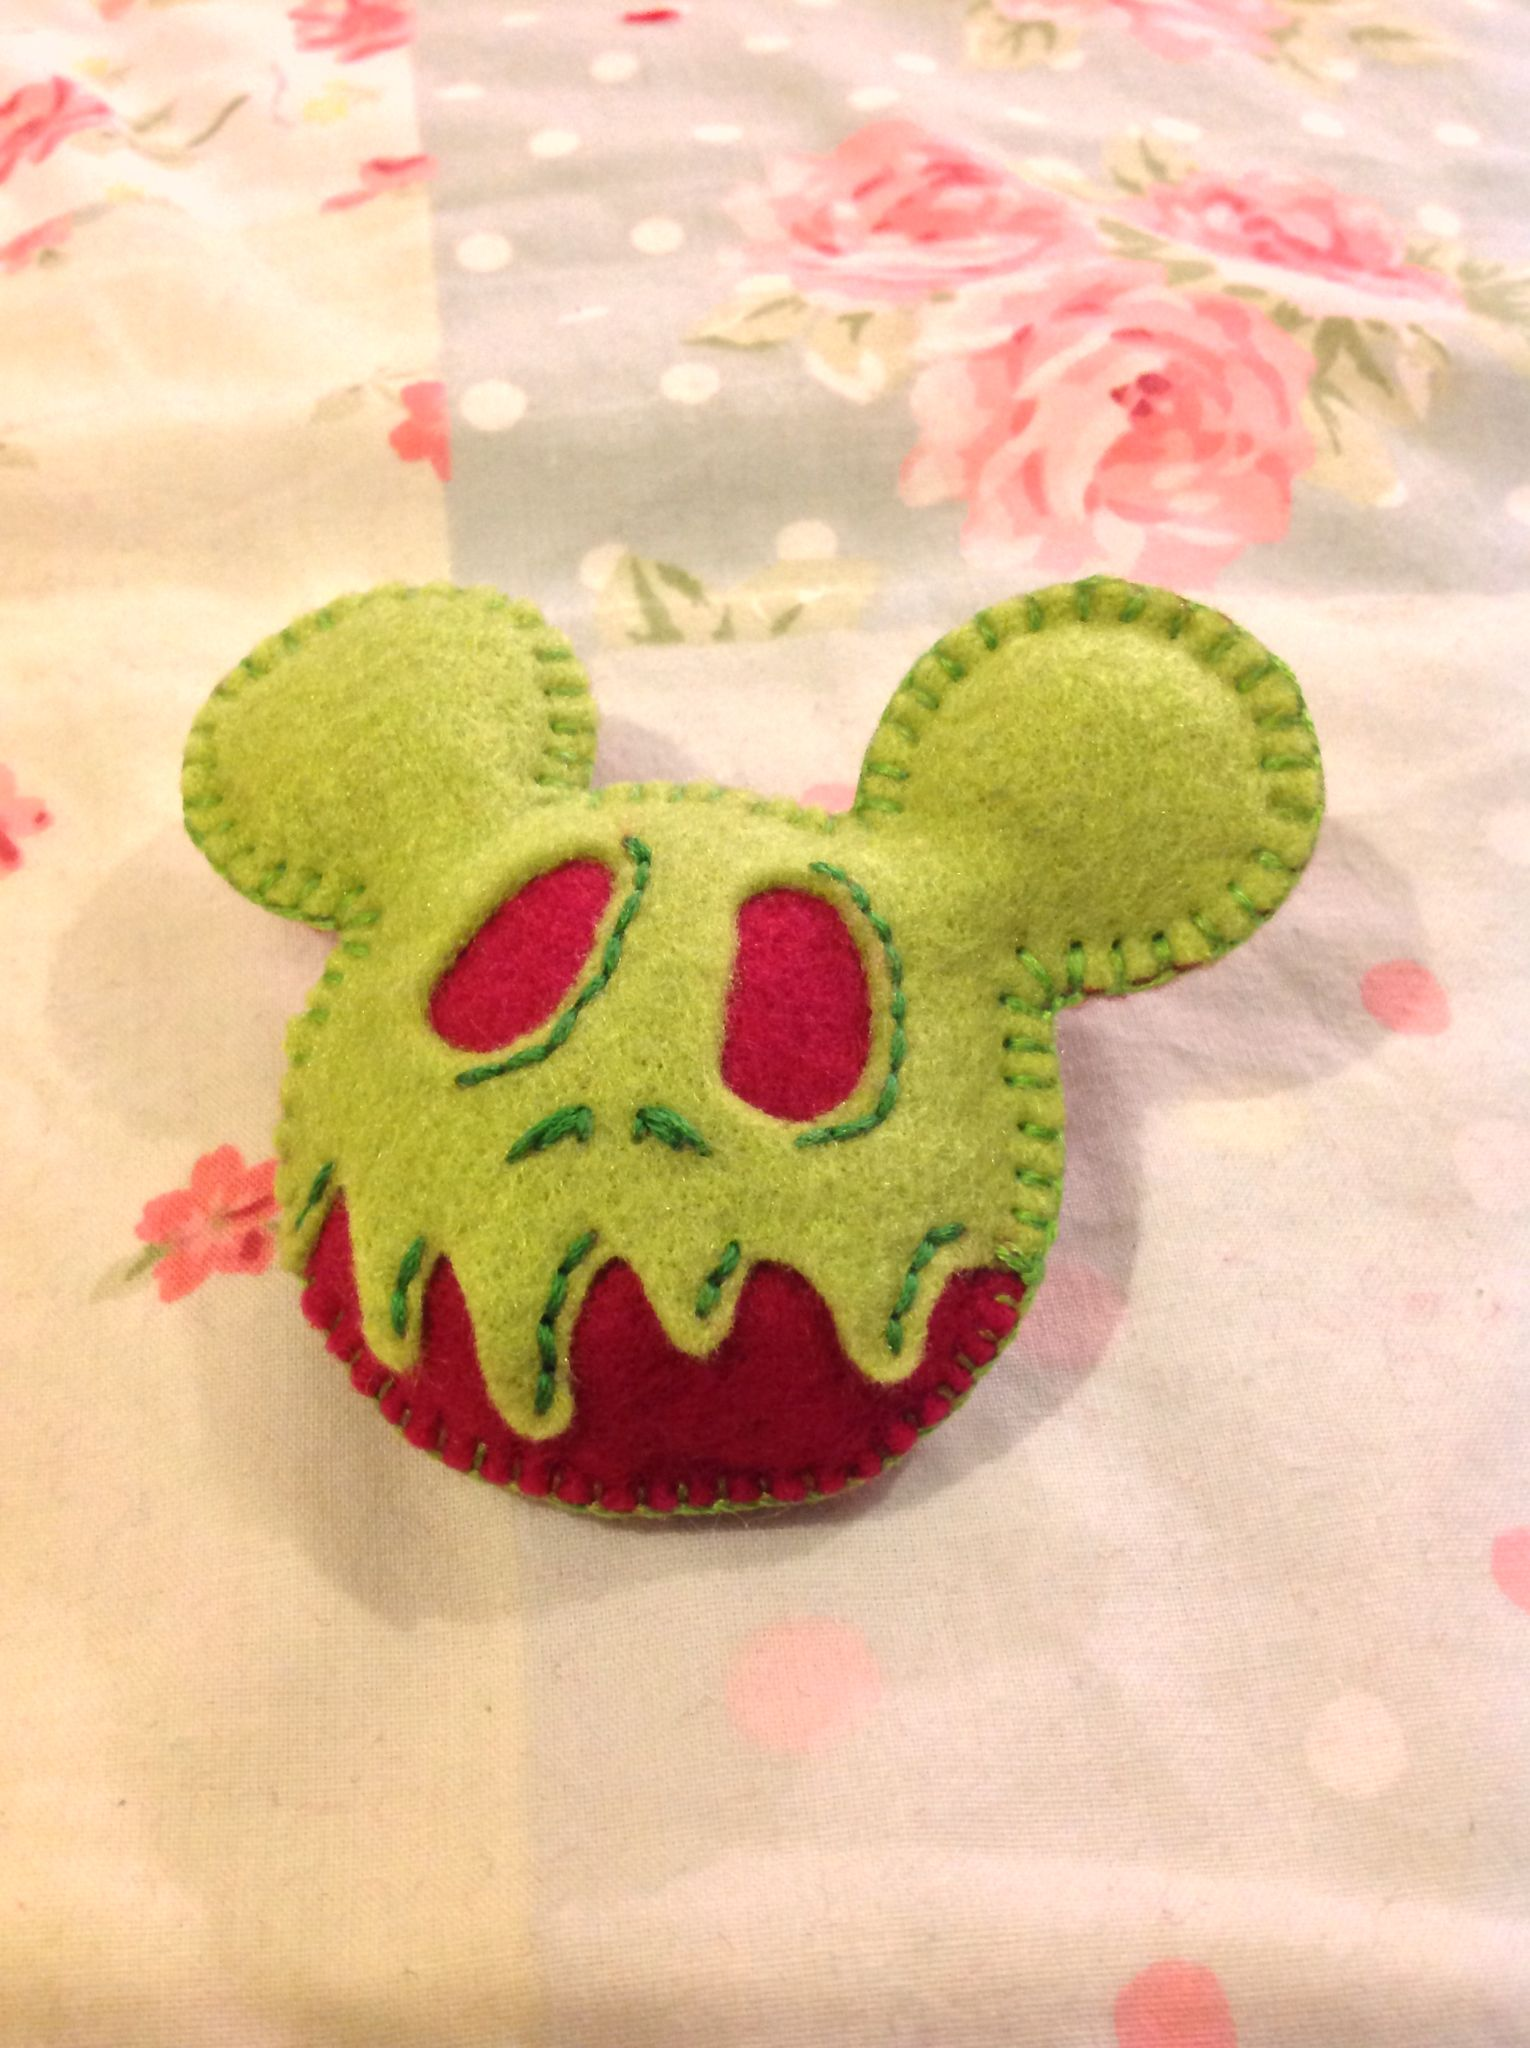 A Mickey Head in the style of the poison apple from Snow White for my friend Stephie V